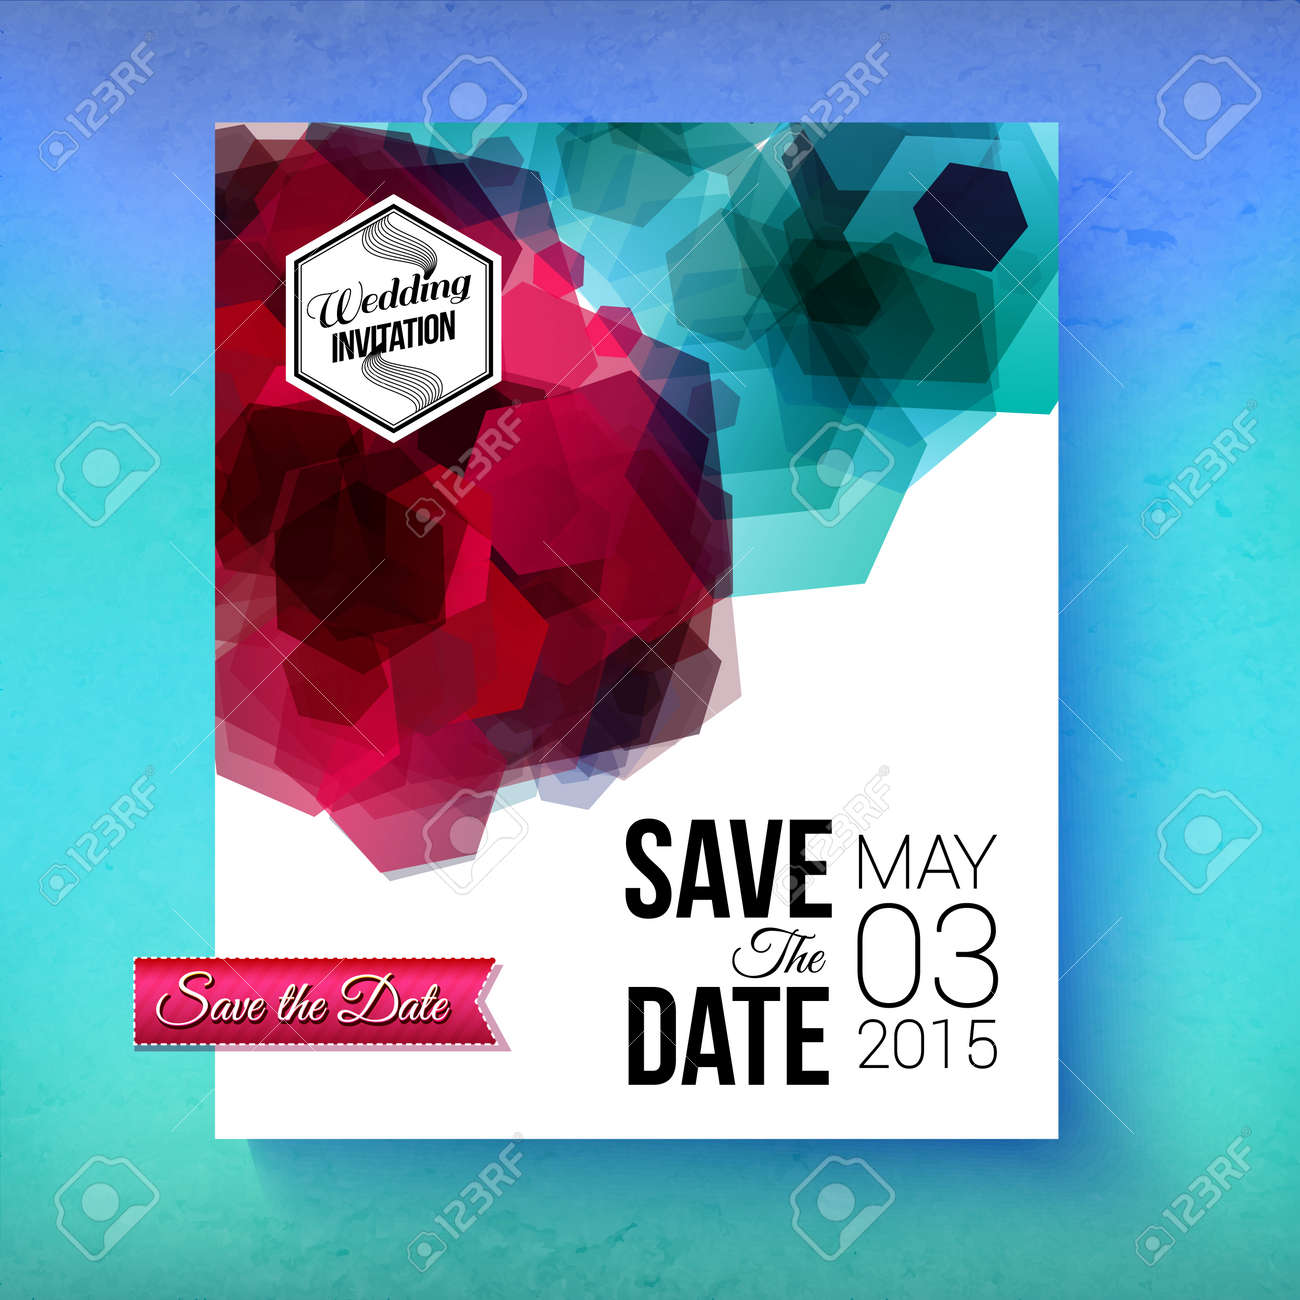 Artistic romantic save the date wedding invitation or card template artistic romantic save the date wedding invitation or card template with bold abstract geometric blue and stopboris Choice Image